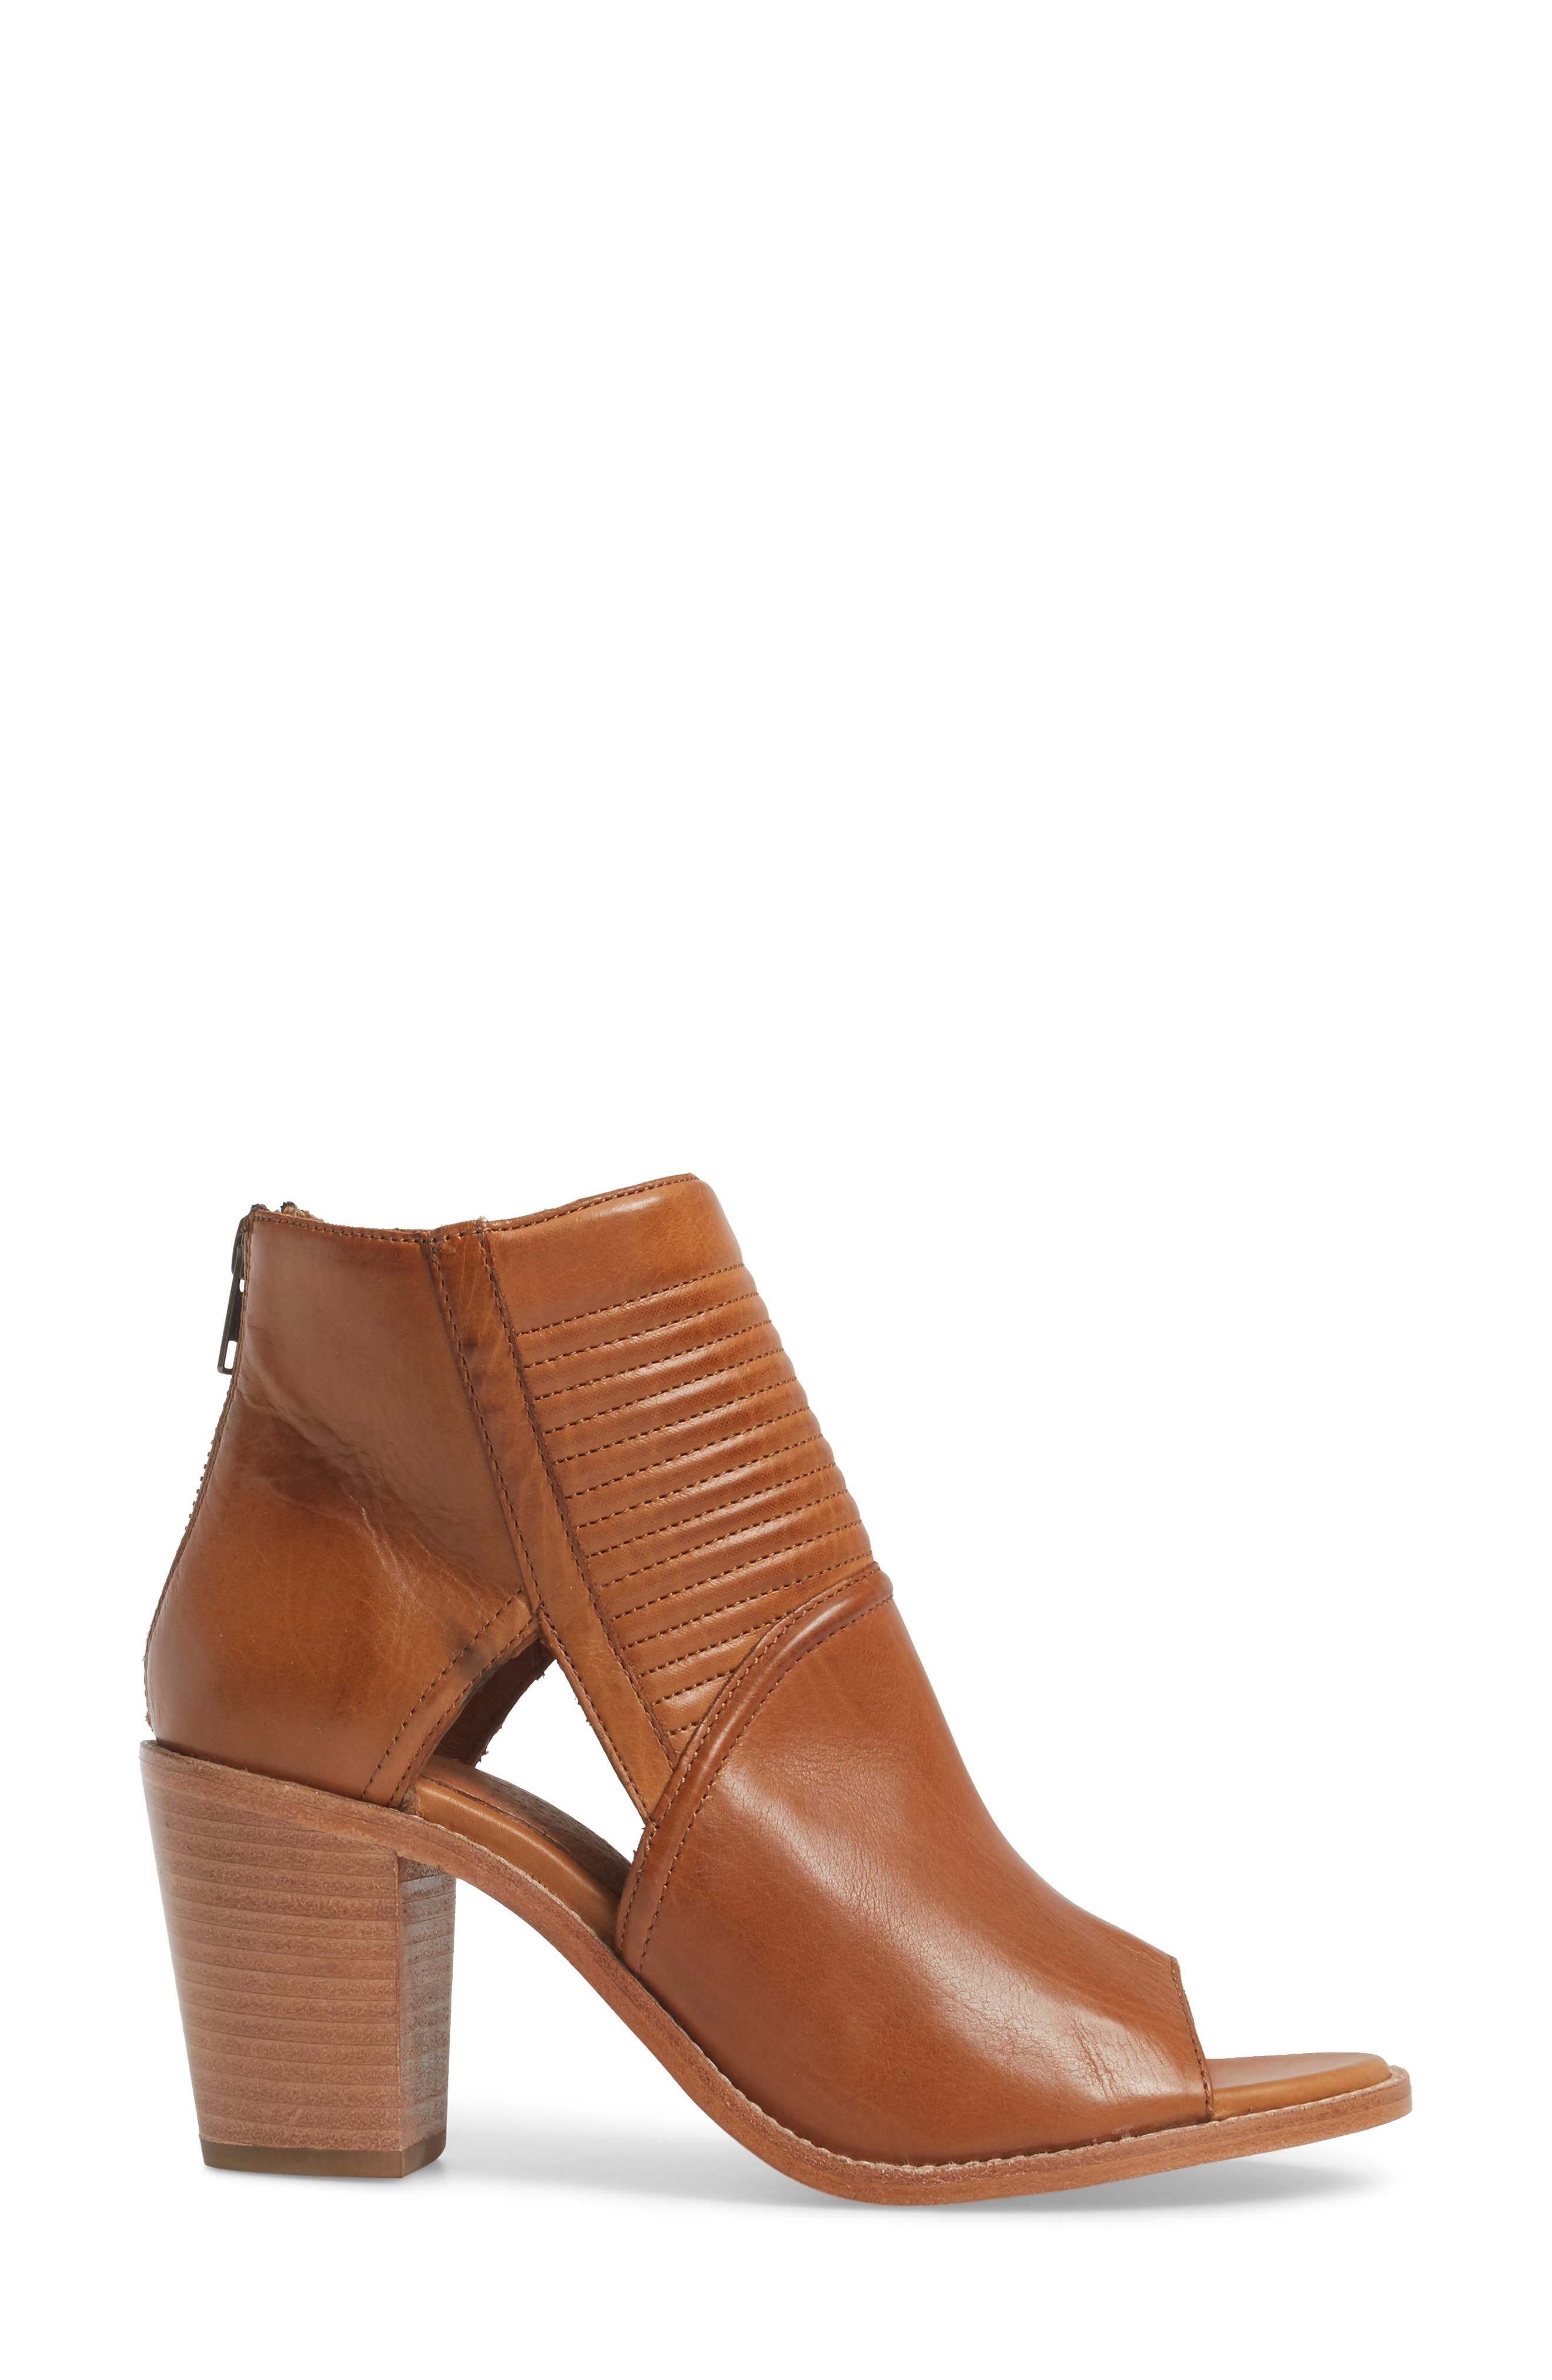 Bailey Quilted Peep Toe Bootie,                             Alternate thumbnail 3, color,                             Cognac